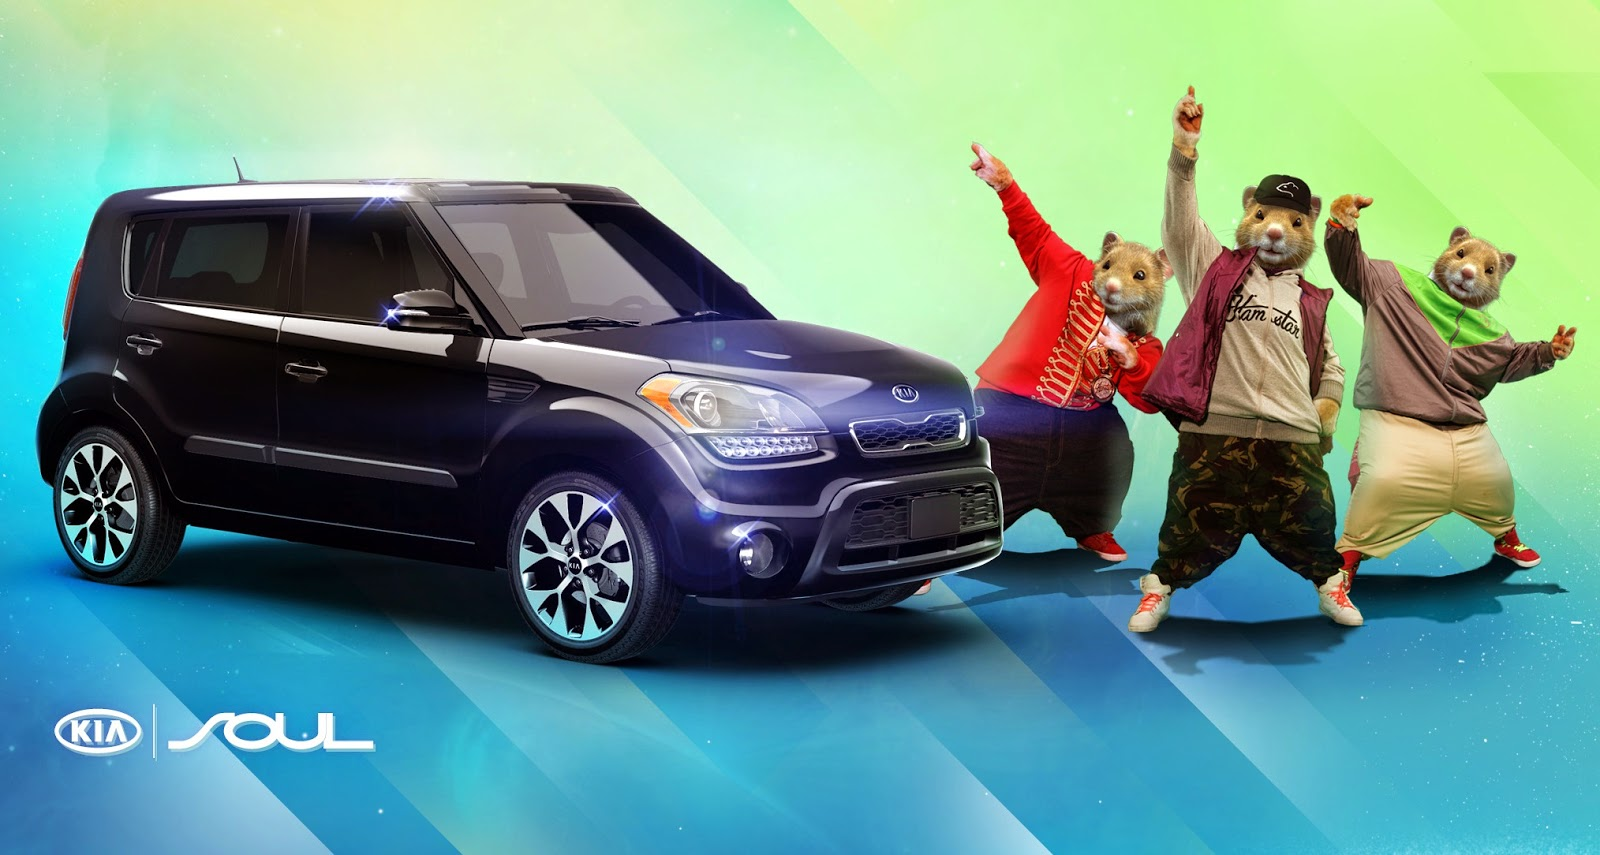 Marvelous The Kia Soul Hamster Commercials   A New World On Wheels. U003e